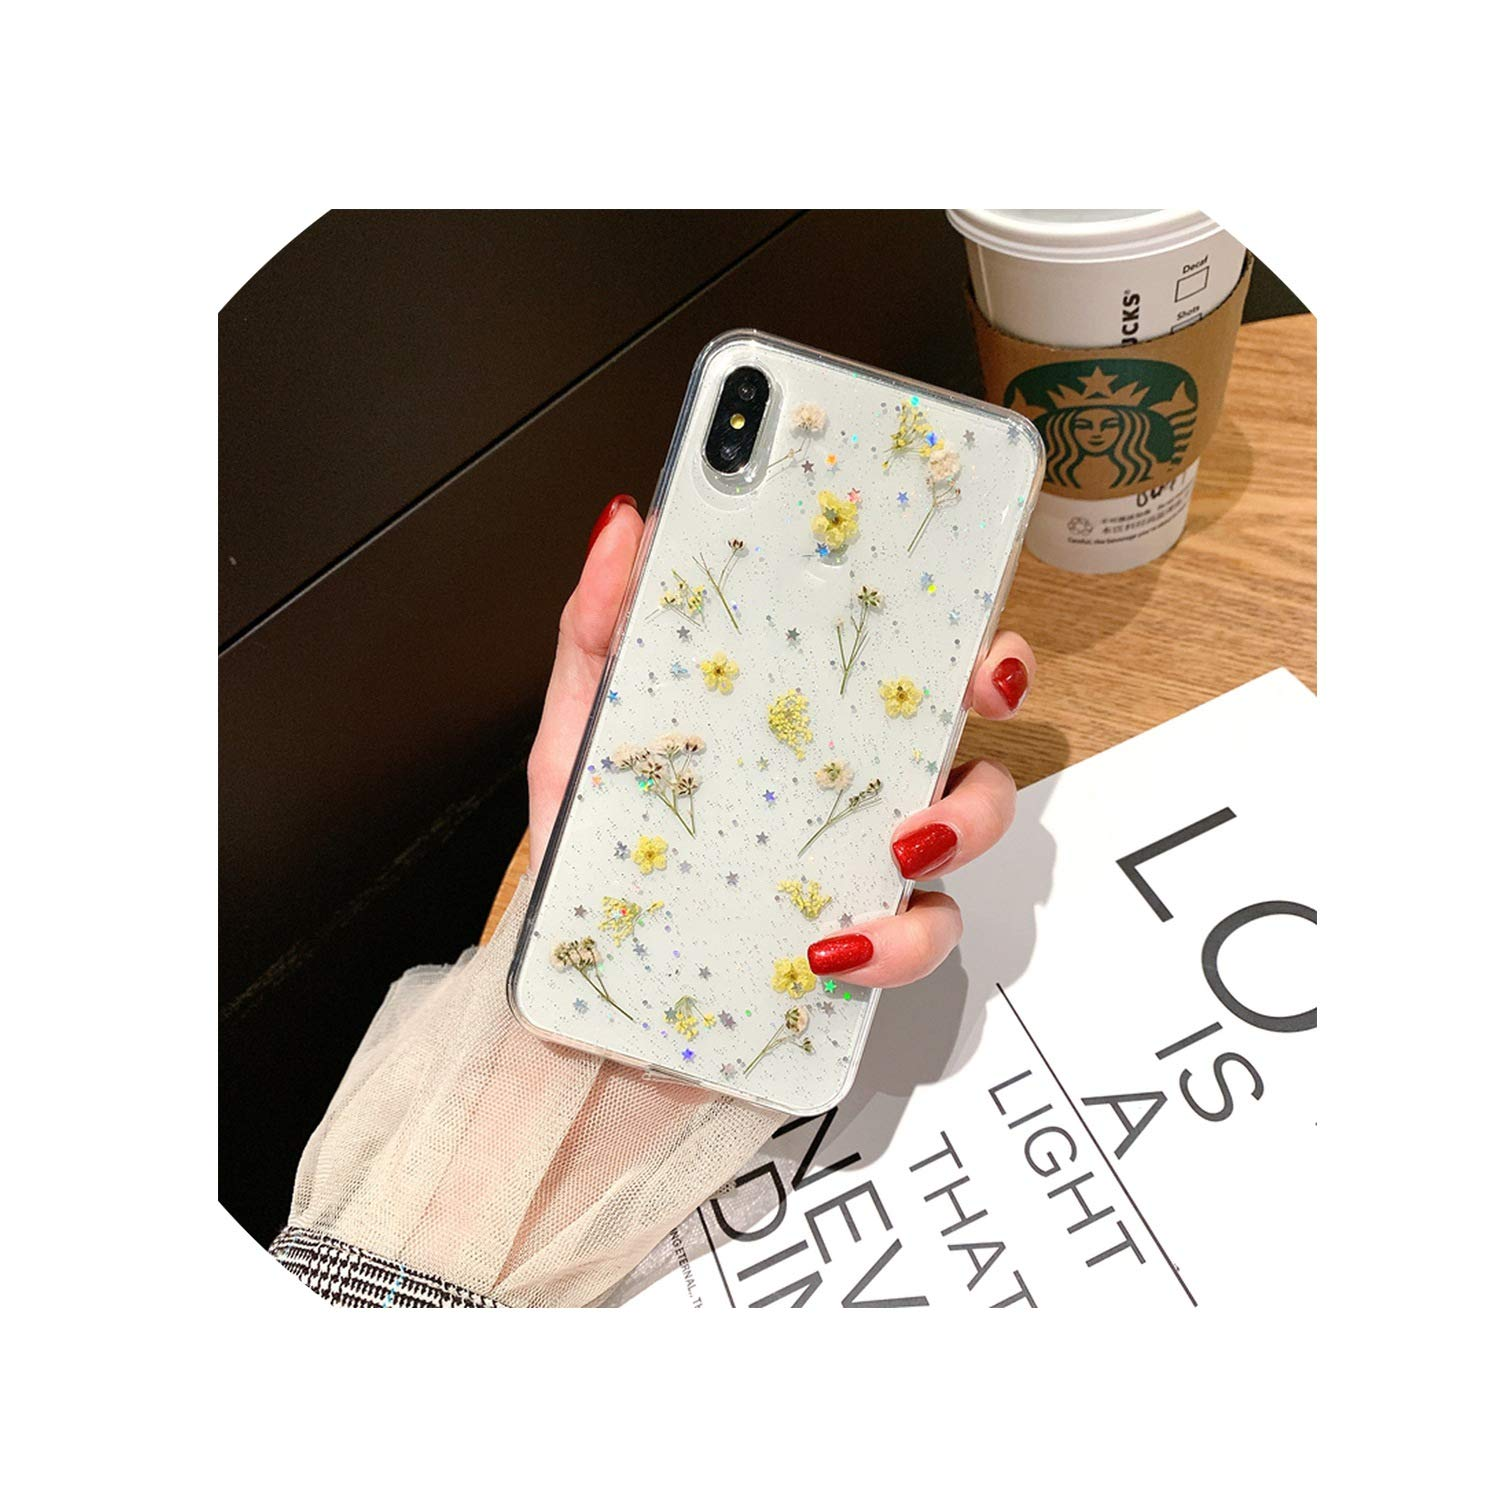 Thumb Shop Beautiful Real Pressed Flower Phone Case for iPhone Xr X Xs Max 6 6S Plus 7 8 Floral Transparent Clear Silicone Cover,C,for iPhone Xr